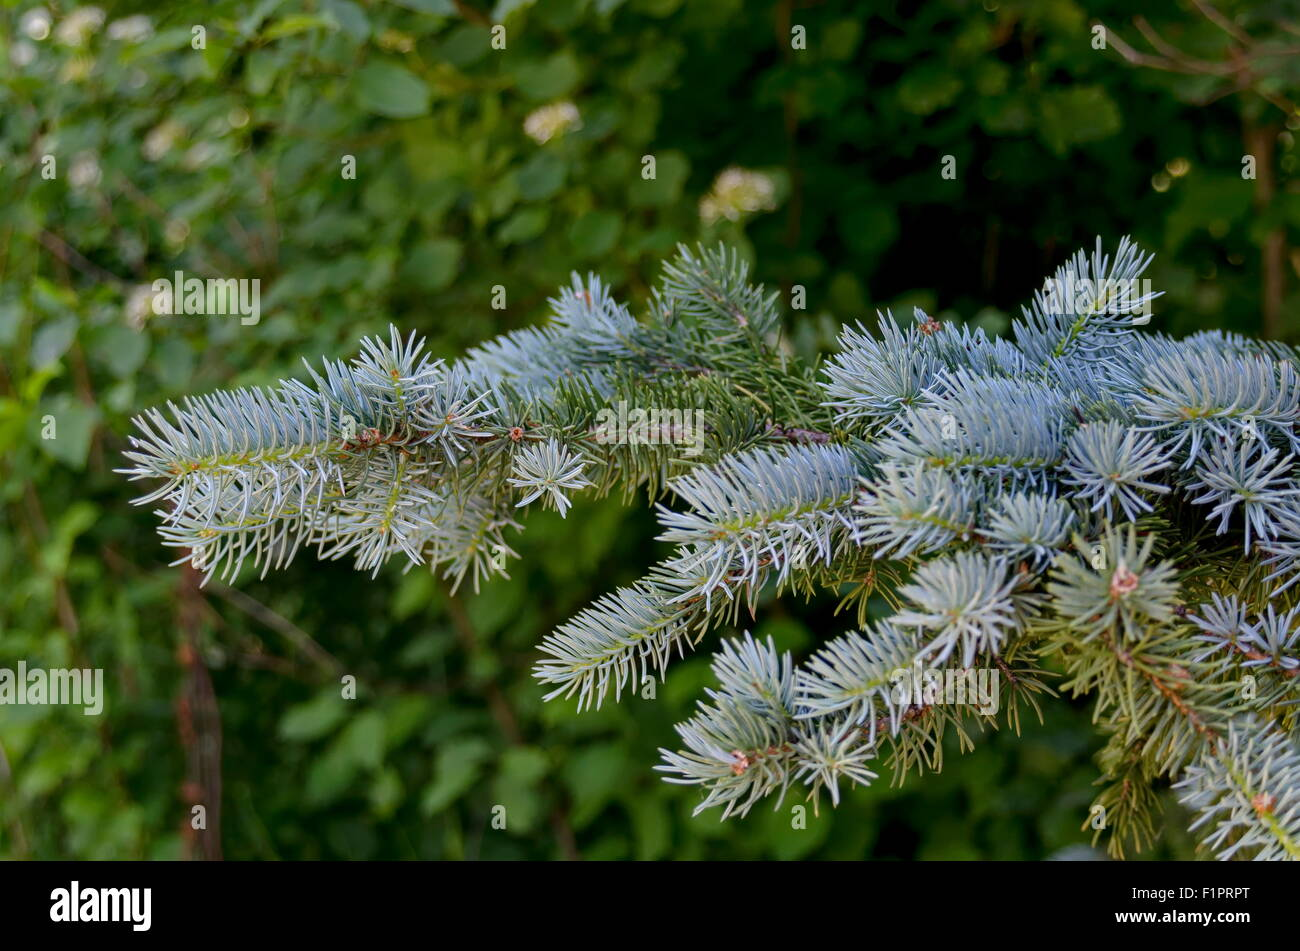 Twig from conifer tree in park, Sofia Bulgaria - Stock Image